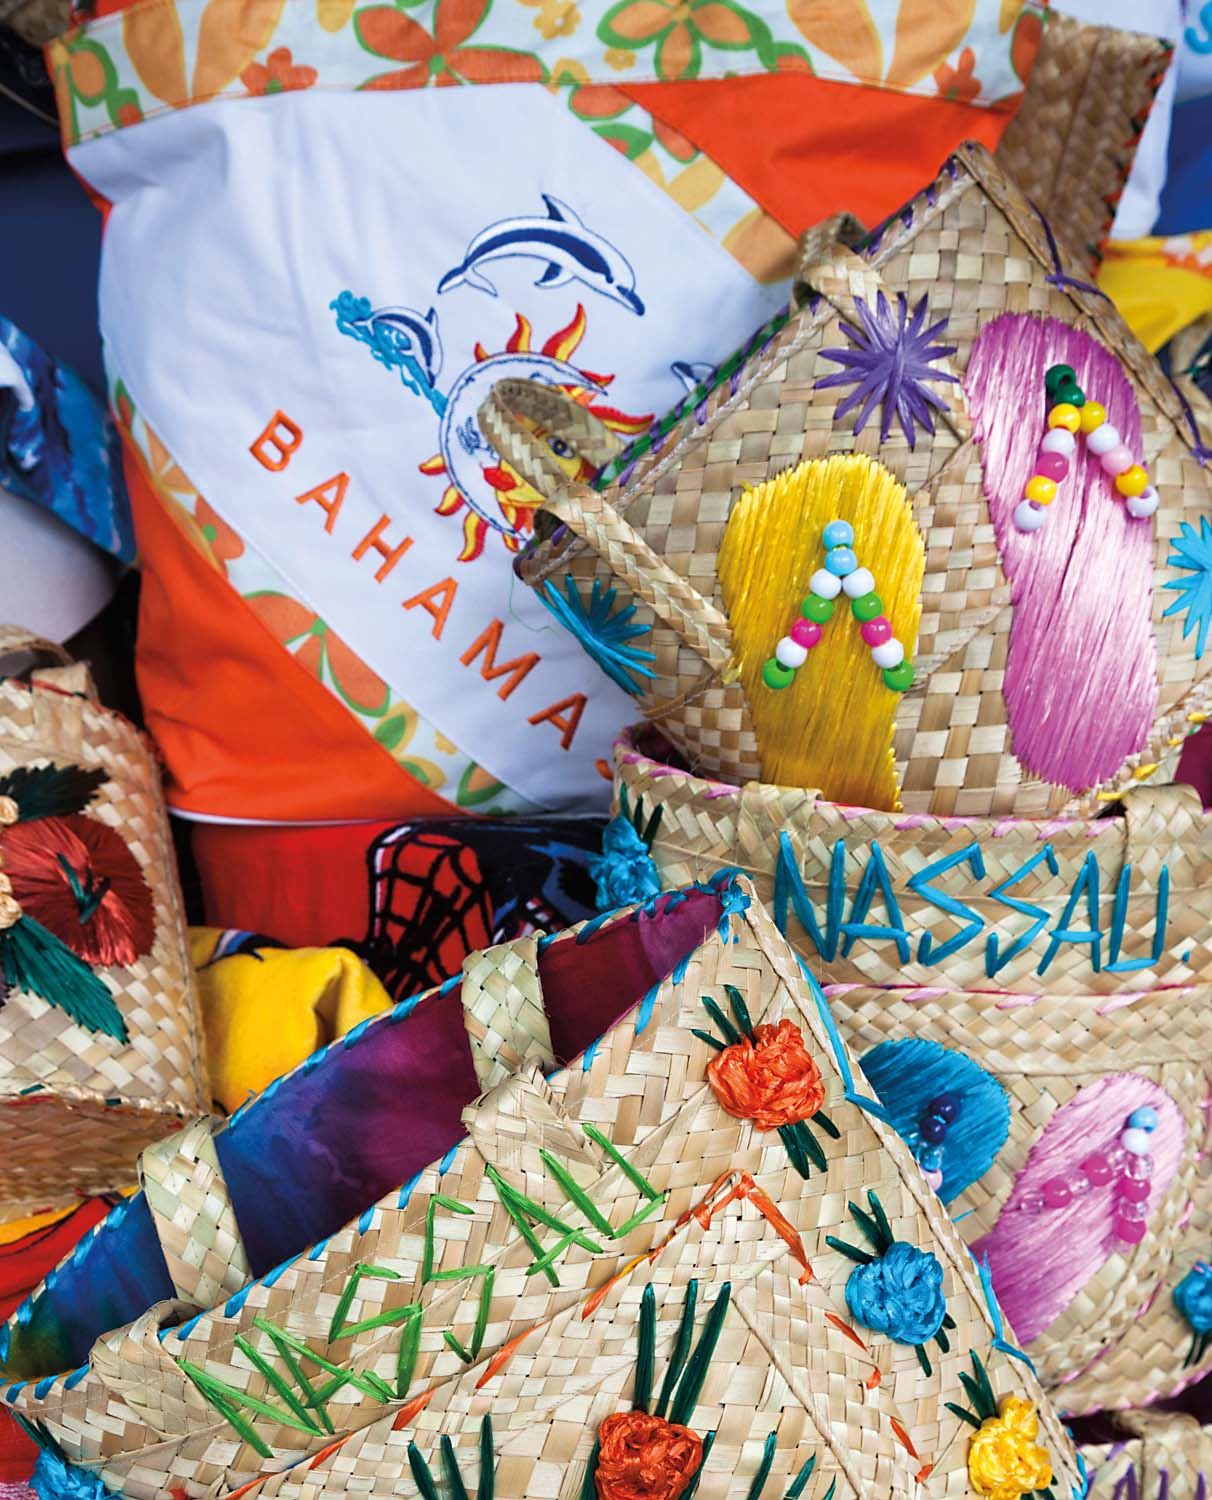 Colourful baskets are a typical souvenir on sale at the famous Straw Market in Nassau, capital of the Bahamas. Jon Arnold Images Ltd/Alamy Stock Photo